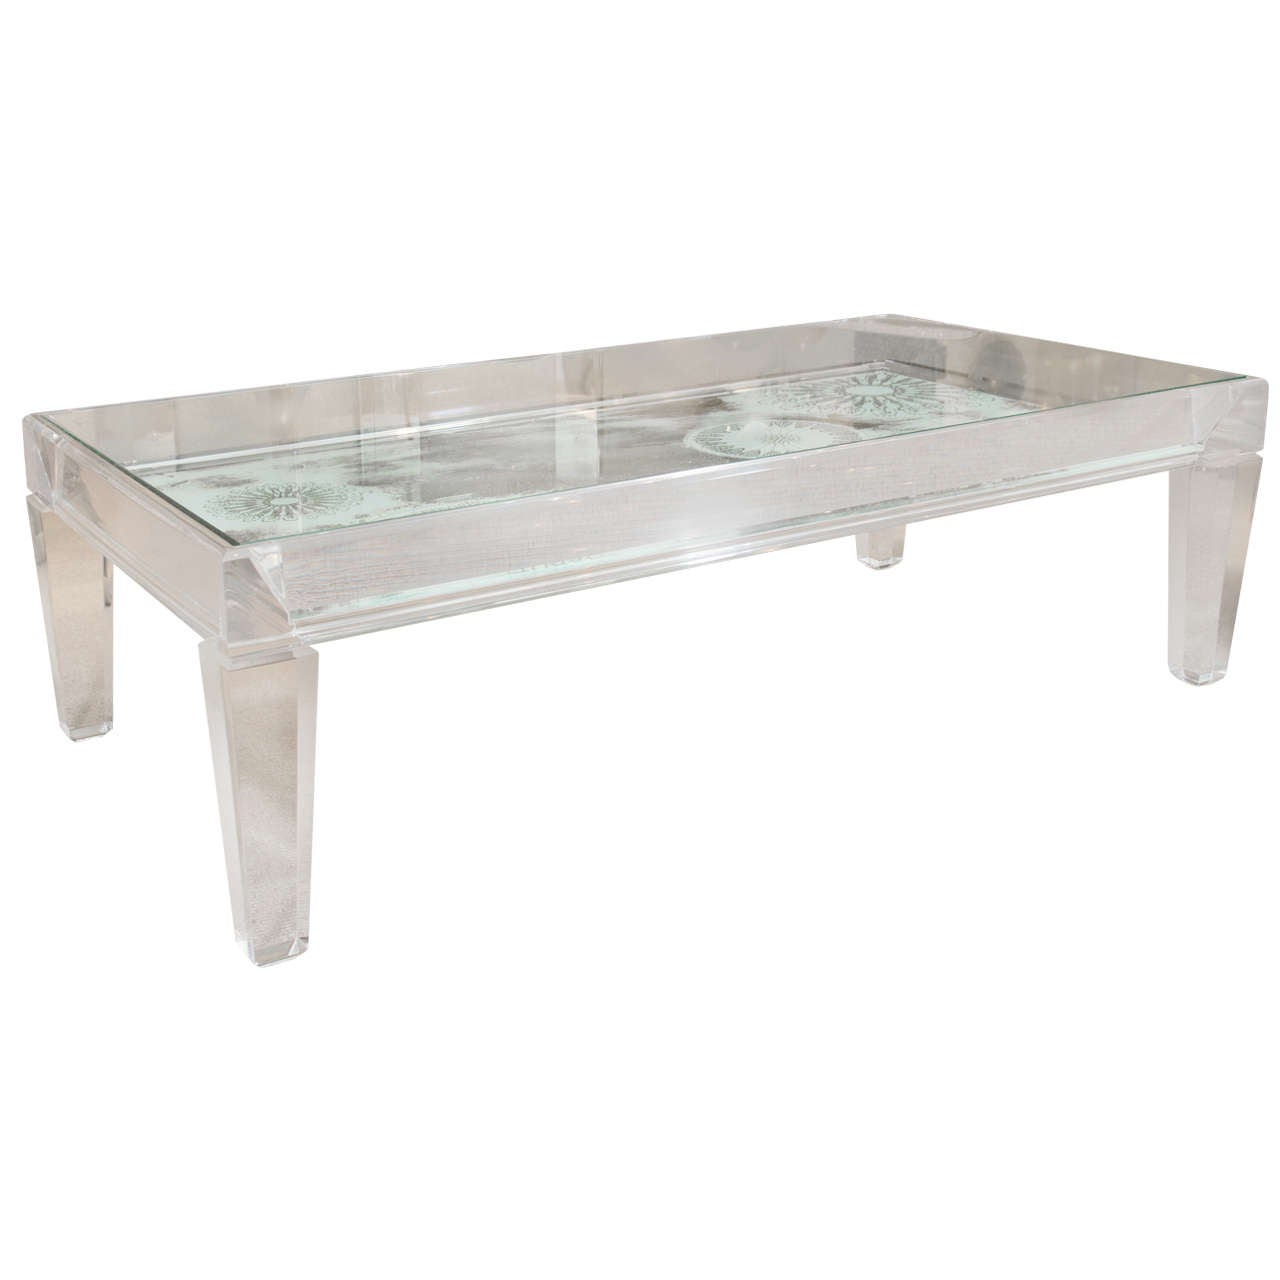 Mid century lucite coffee table for sale at 1stdibs for Acrylic coffee tables for sale